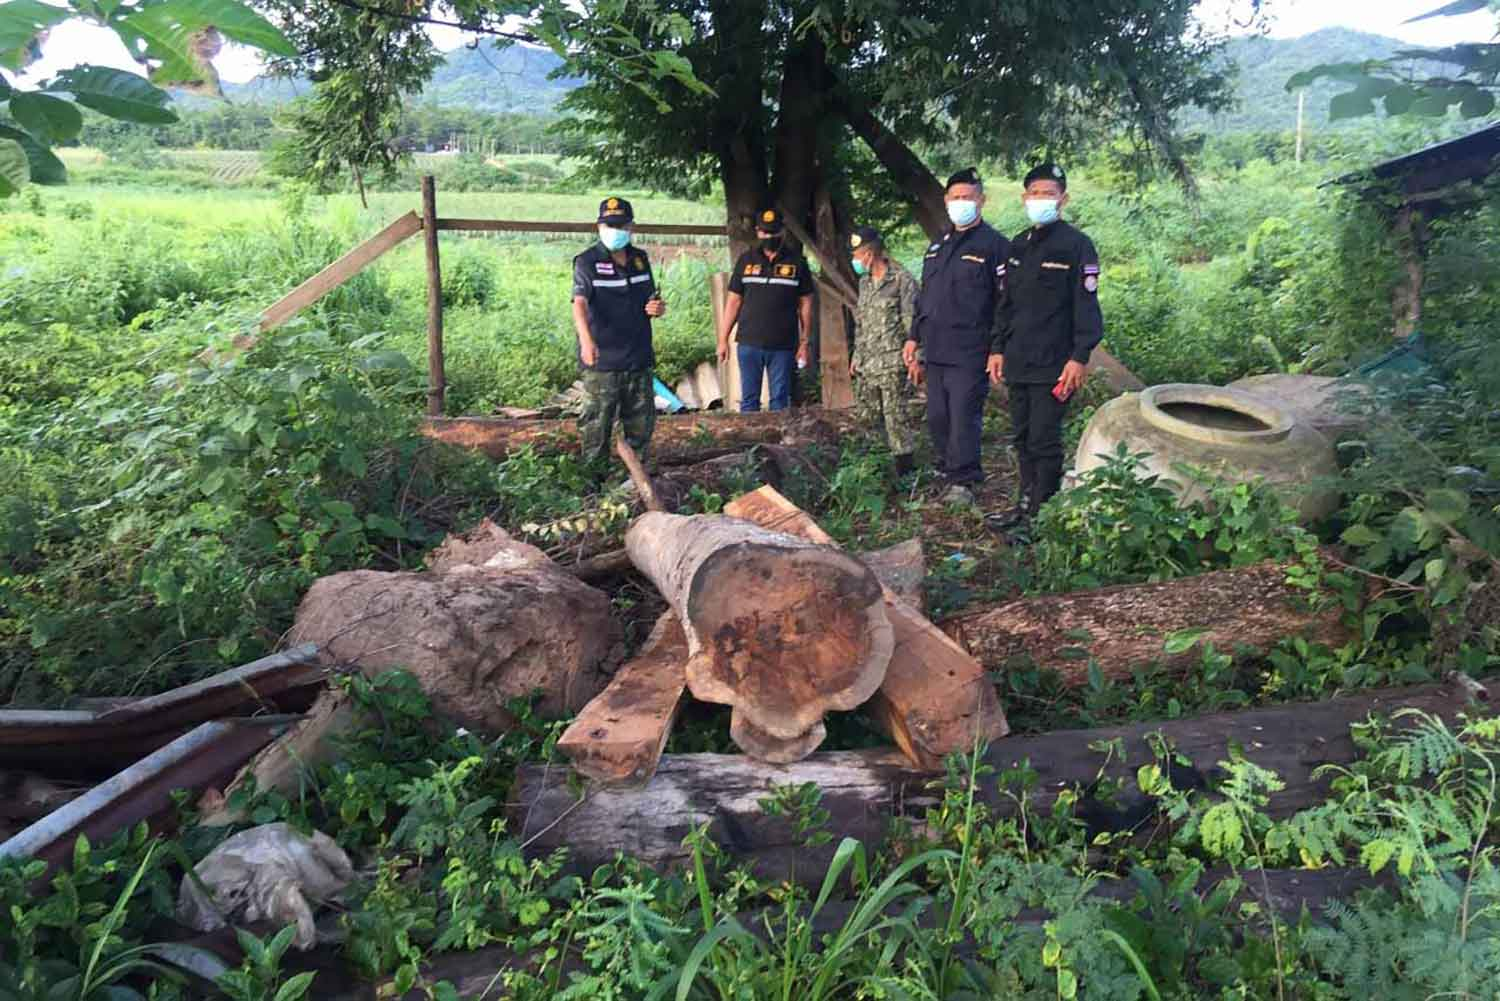 Some of the illegally cut logs seized at a forest temple in Kanchanaburi's Sai Yok district on Monday. A suspect was arrested. (Photo: Piyarat Chongcharoen)